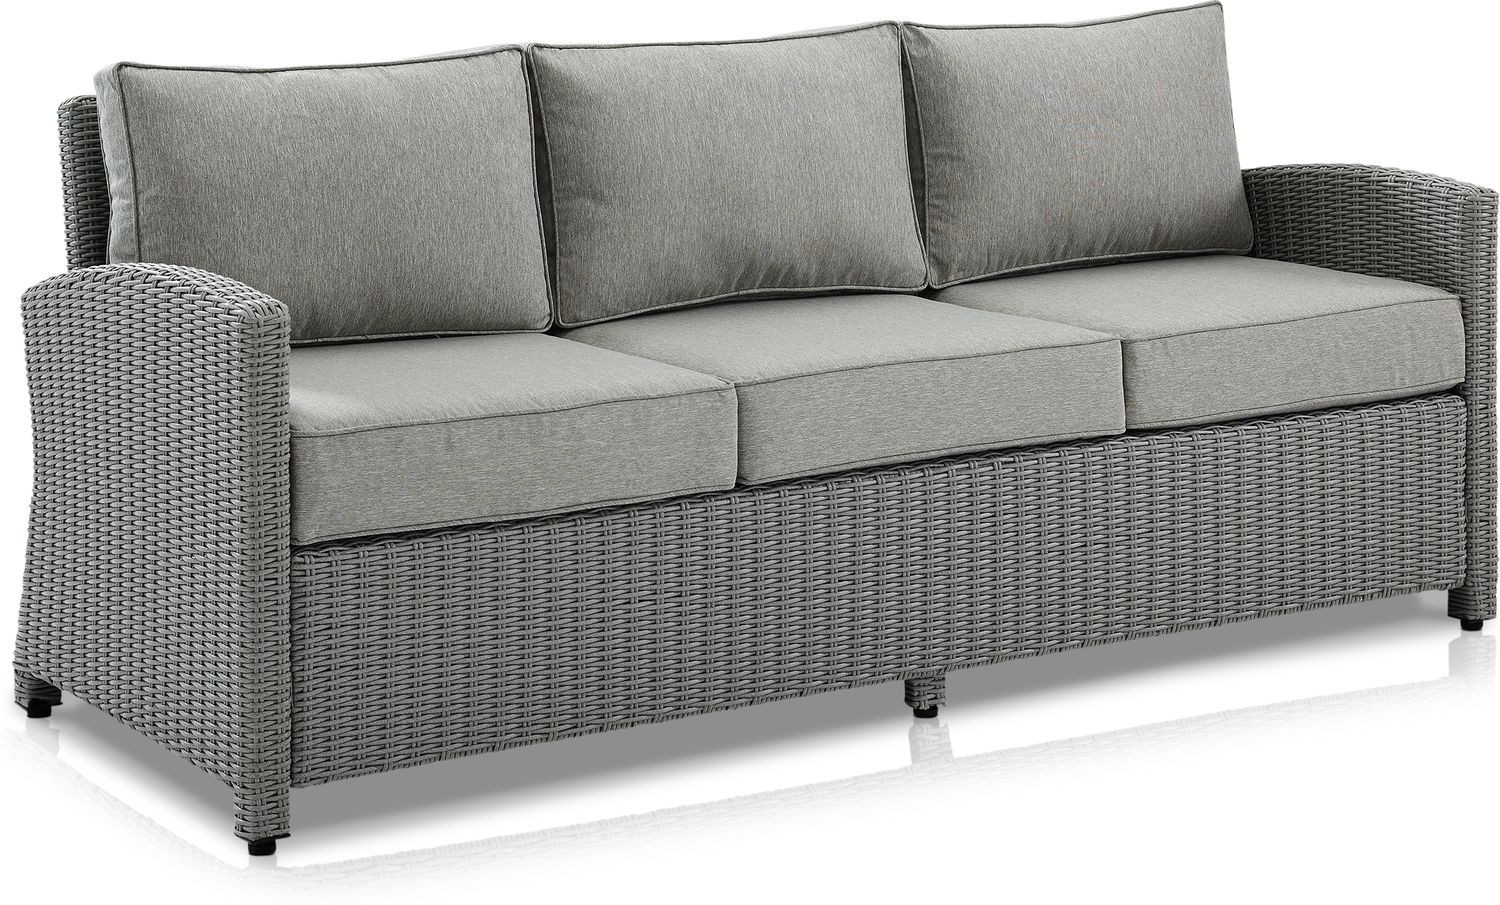 Outdoor Furniture - Destin Outdoor Sofa